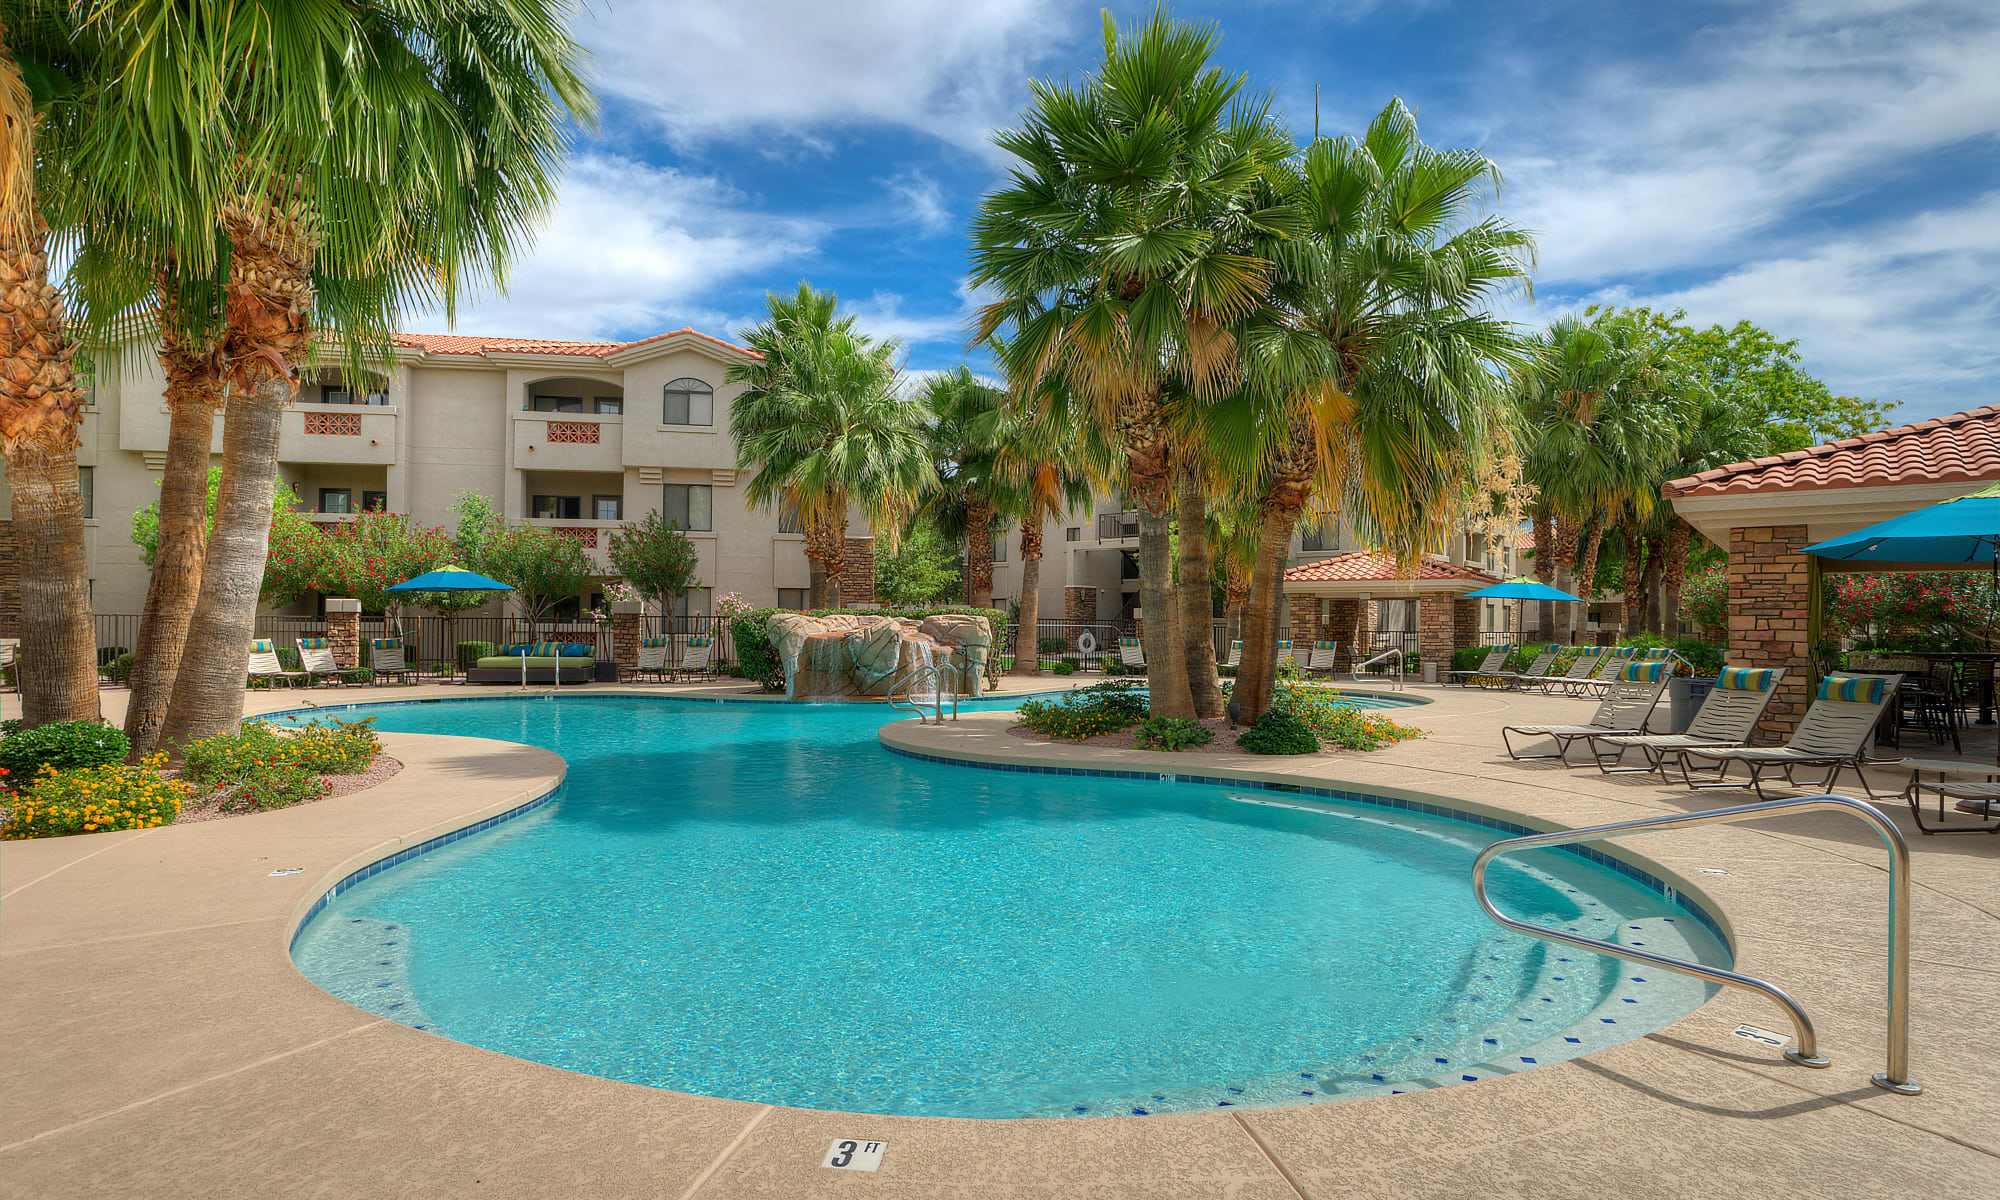 Apartments in Tempe, Arizona at San Marbeya